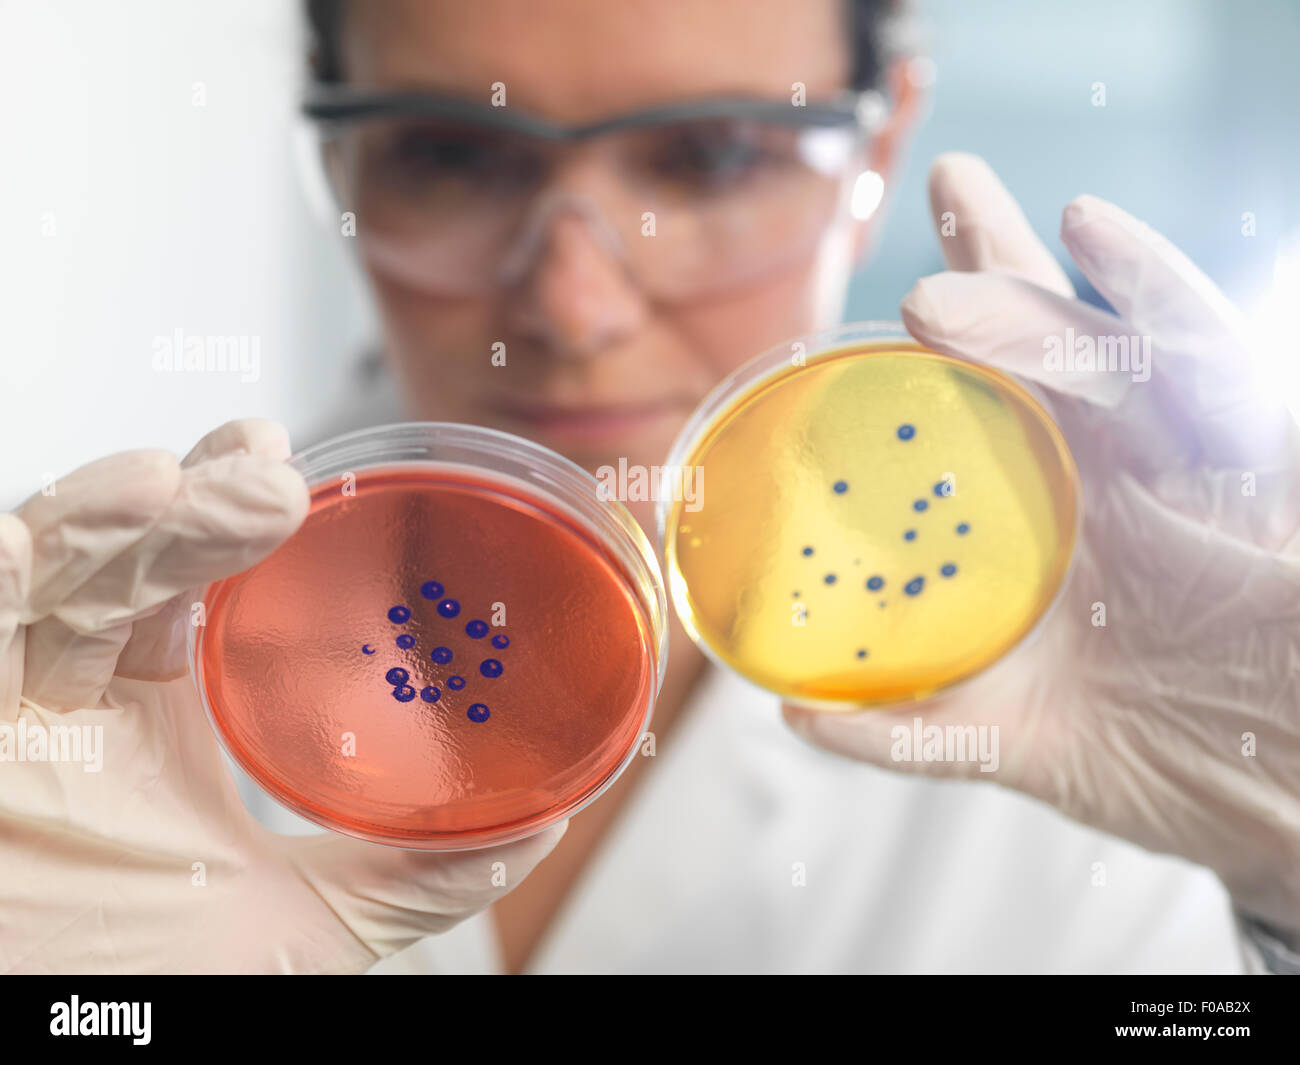 Scientist examining set of petri dishes in microbiology lab - Stock Image